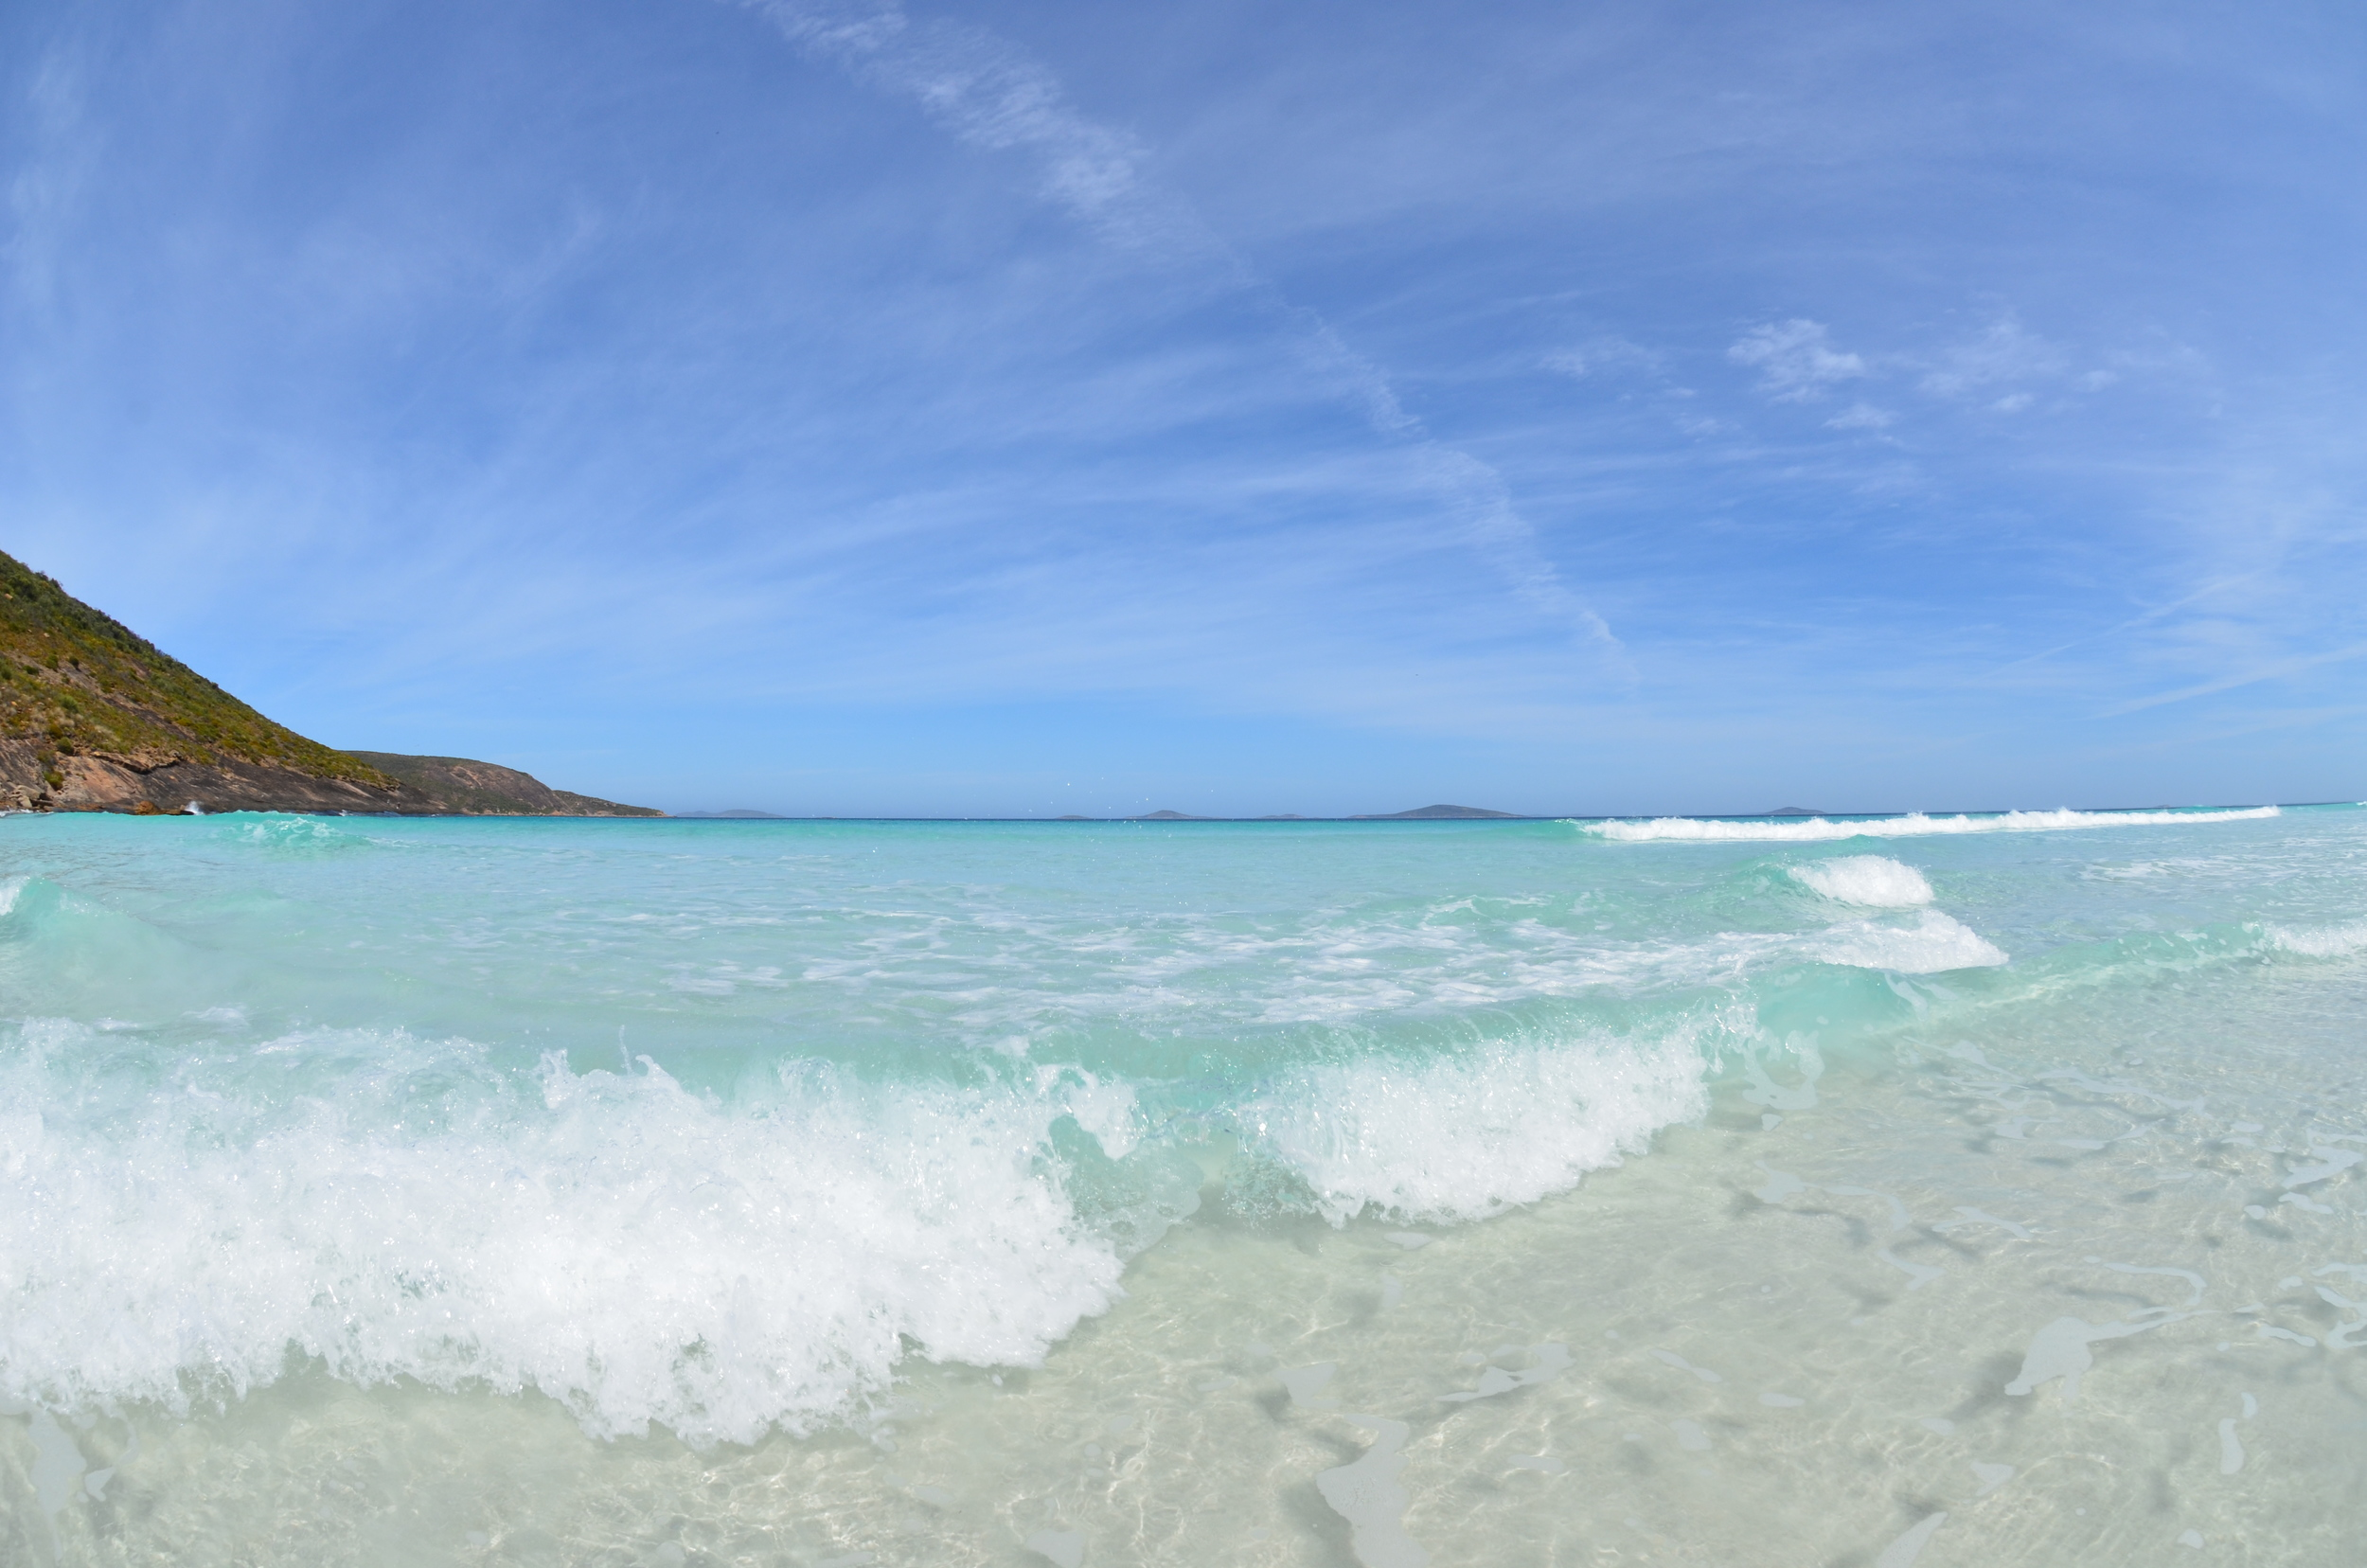 One more shot of this amazing warm water...Ahhh!